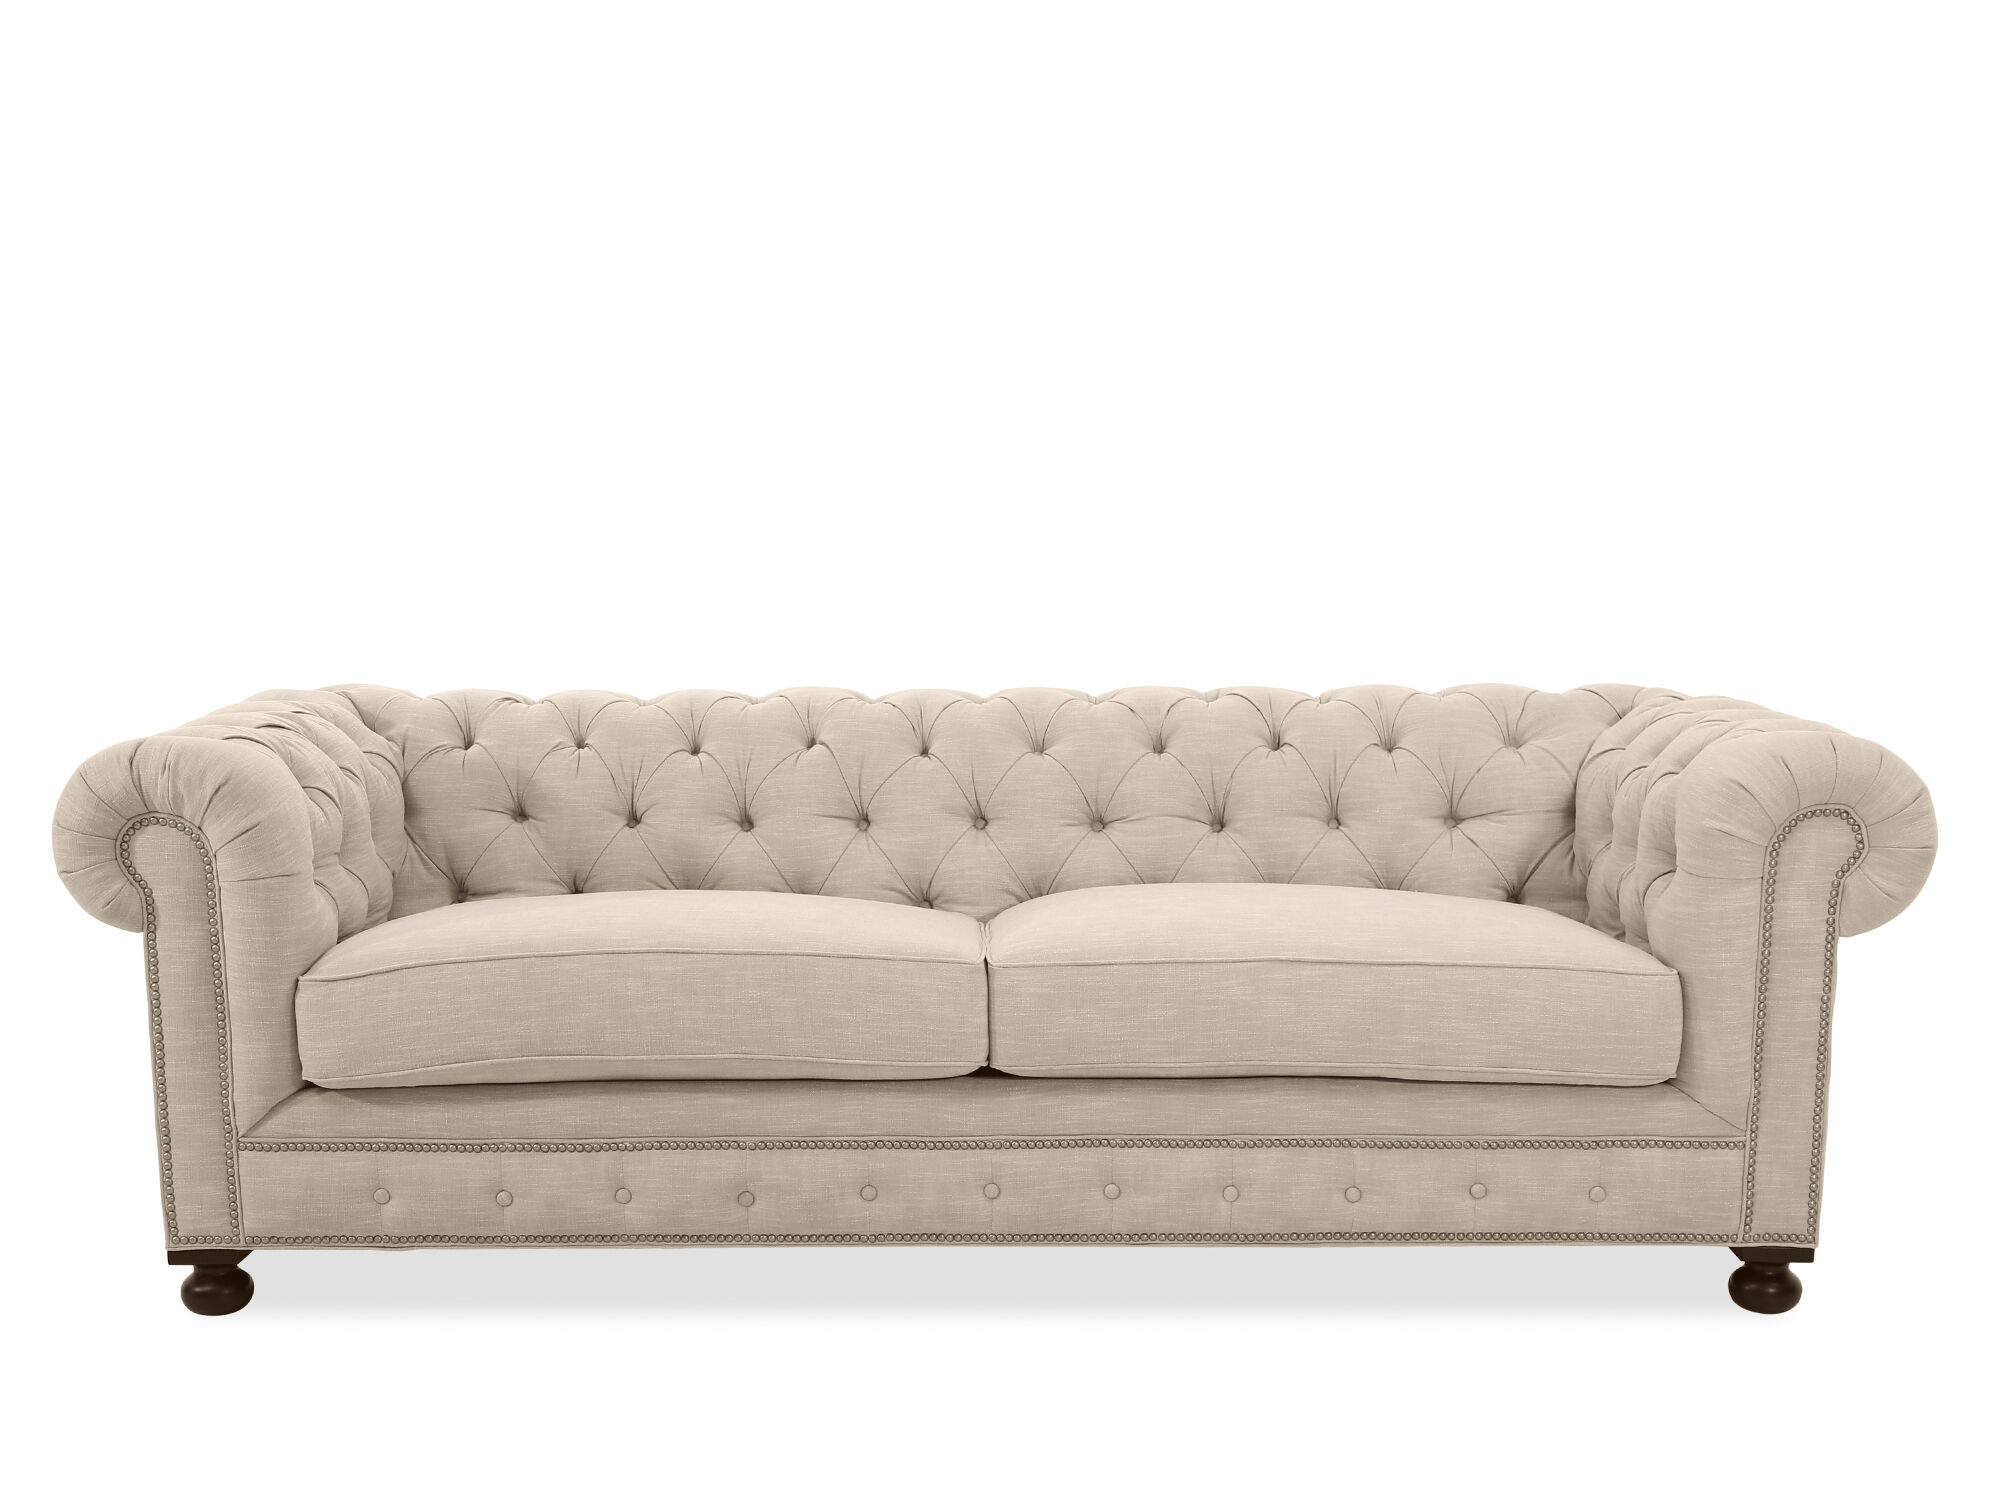 100u0026quot; Low Profile Tufted Silver Nailhead Trimmed Sofa ...